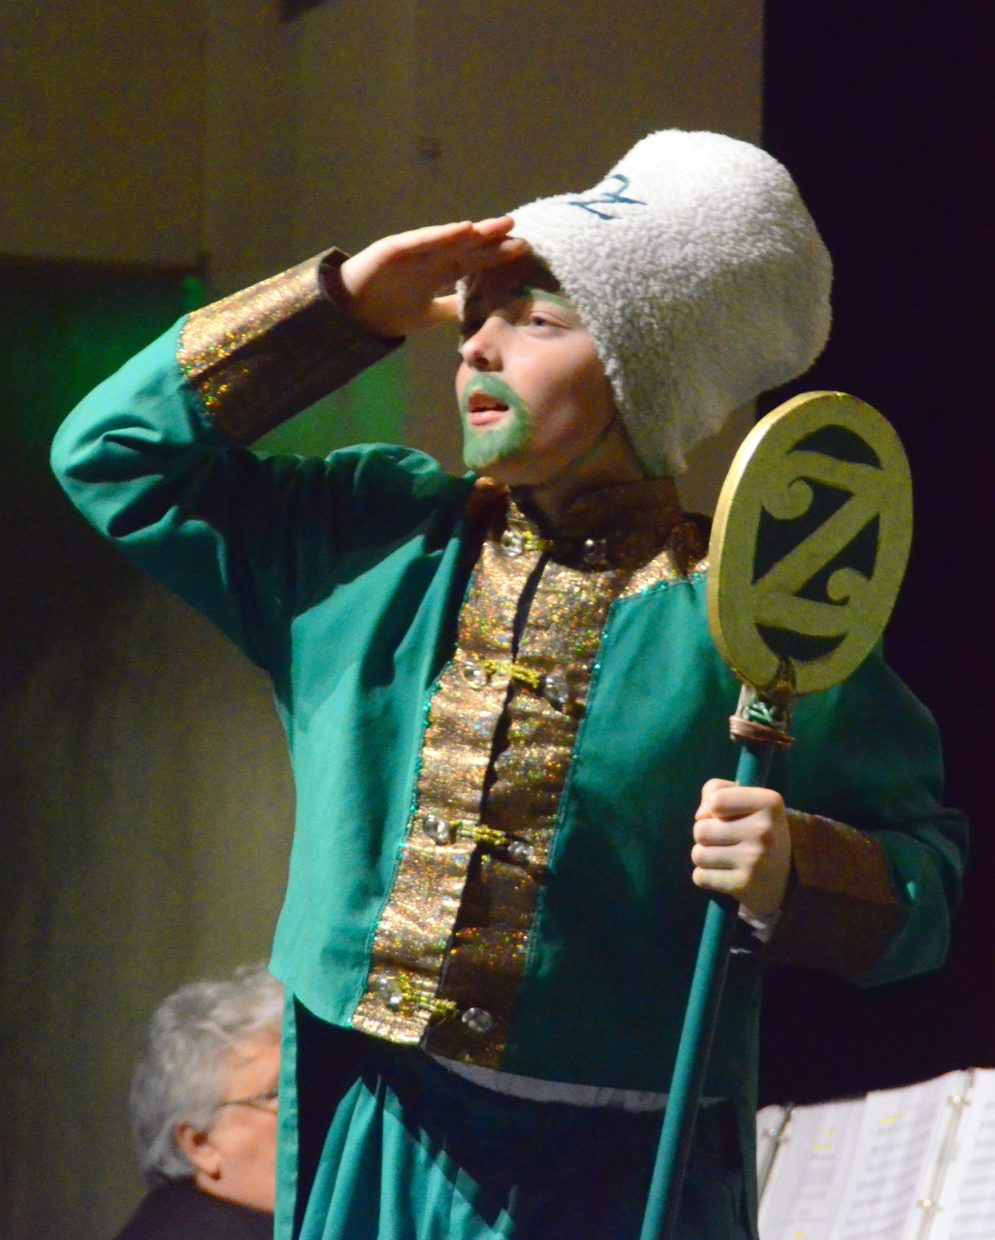 """The Green Guard (Logan Hafey) keeps a watchful eye at the gate of the Emerald City in the Missoula Children's Theatre production of """"The Wizard of Oz"""" Saturday afternoon in the Moffat County High School auditorium."""